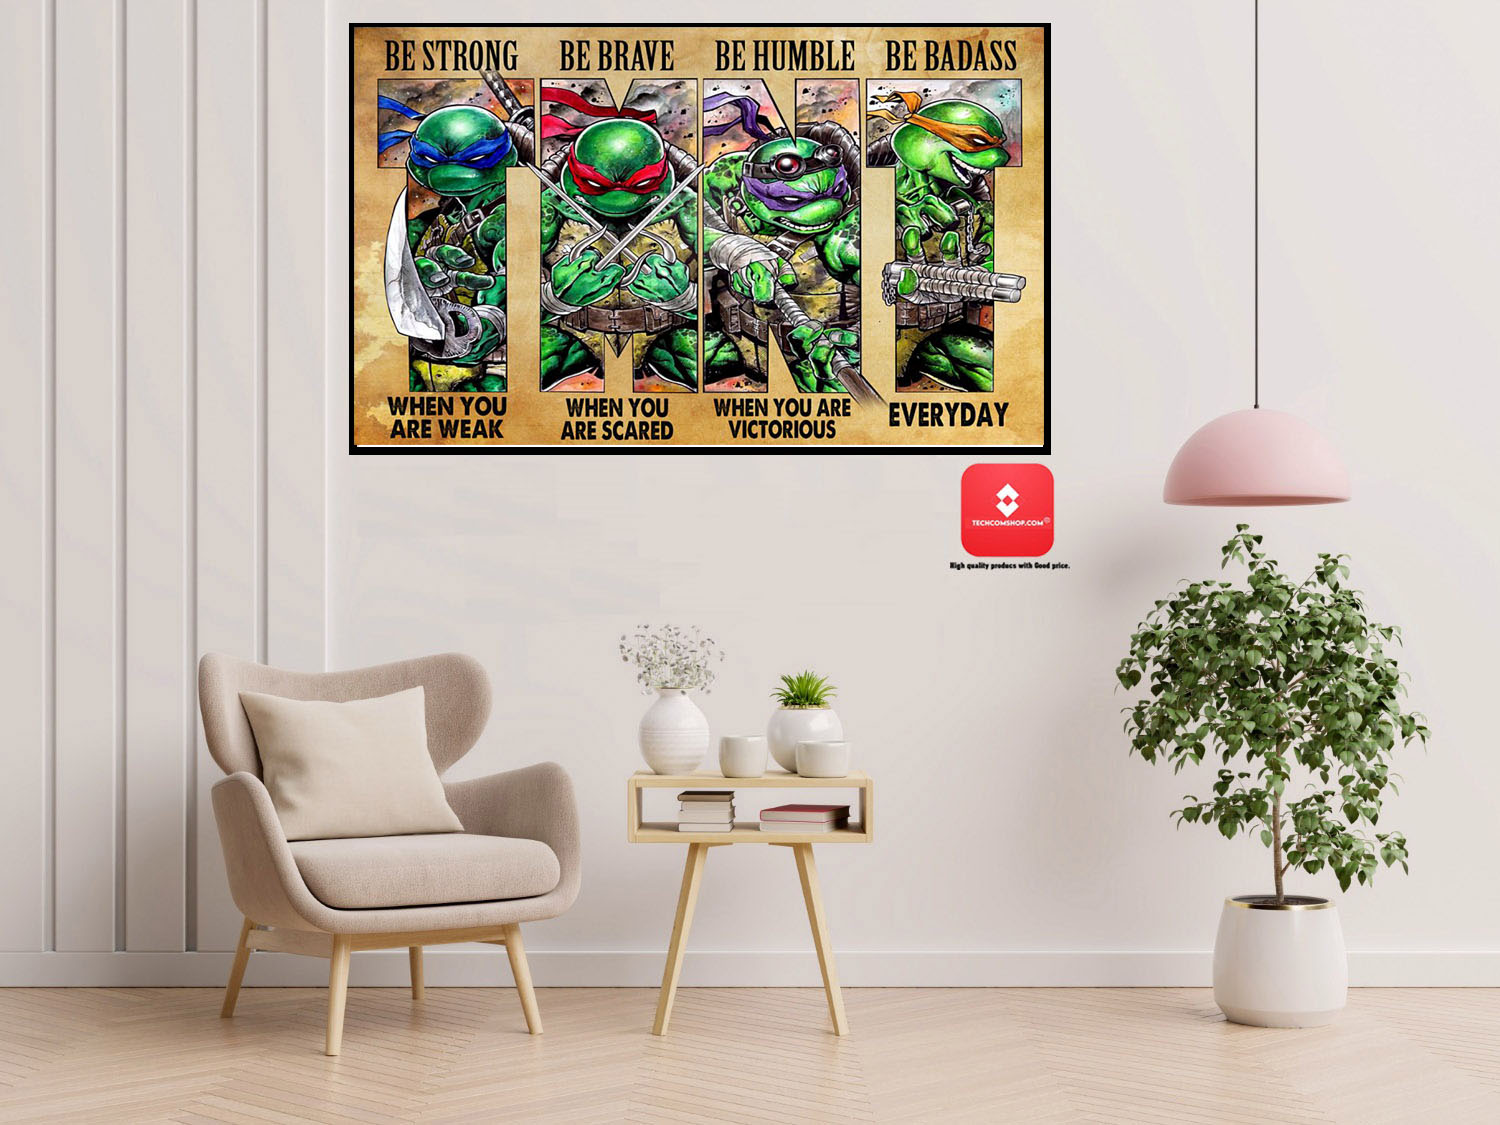 Teenage Mutant Ninja Turtles be strong be brave be humble be badass poster 8